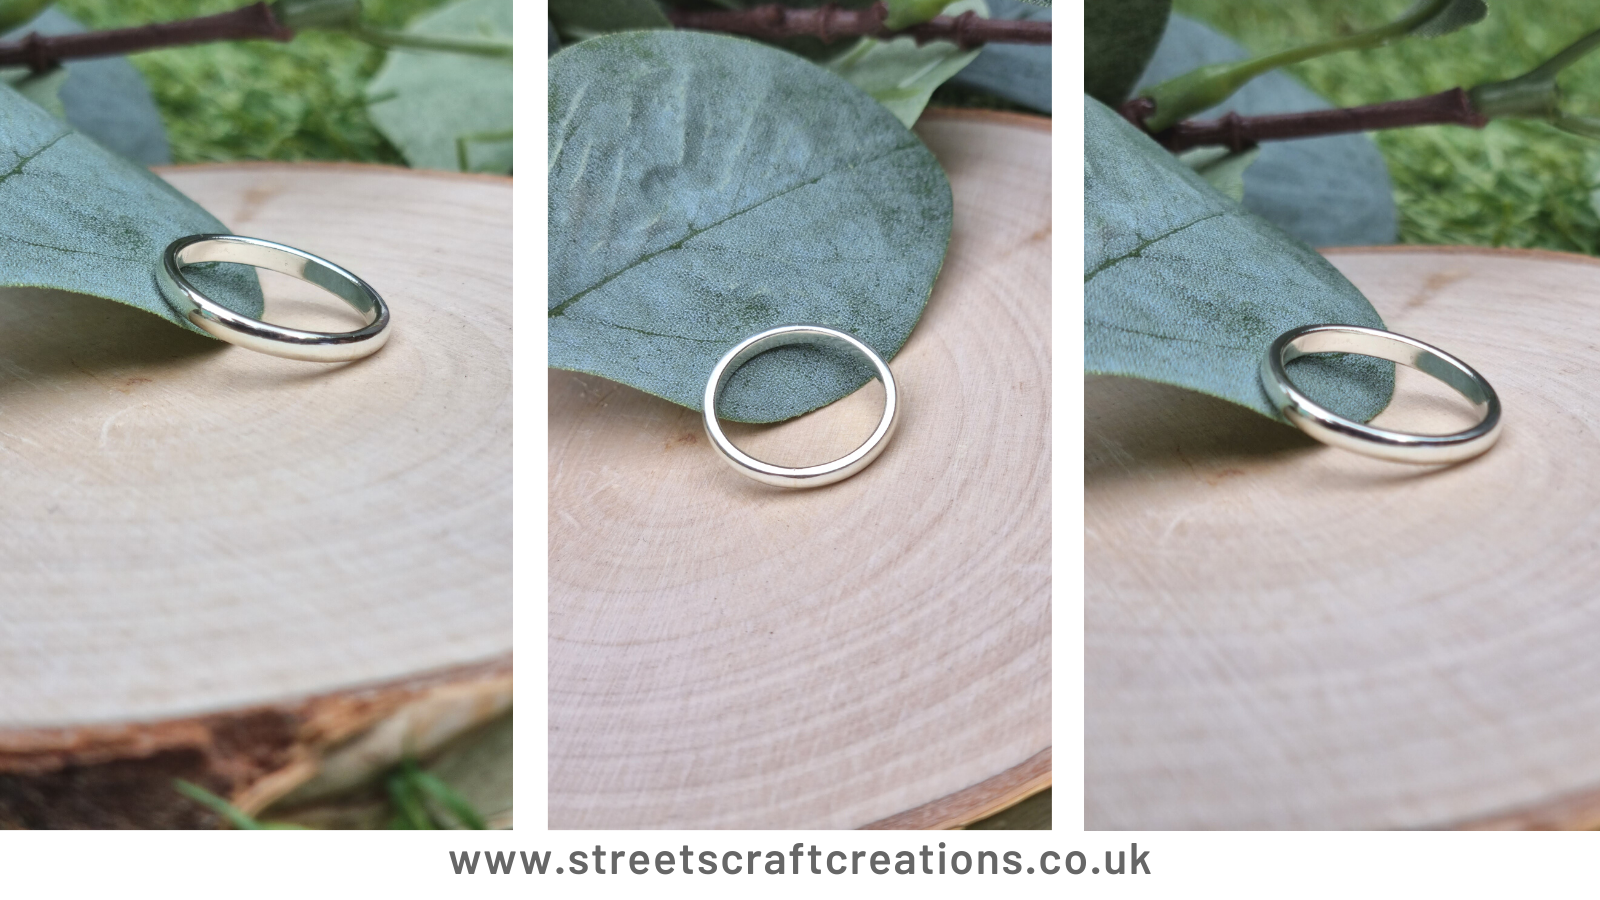 Bespoke White Gold Wedding Ring by Streets Craft Creations